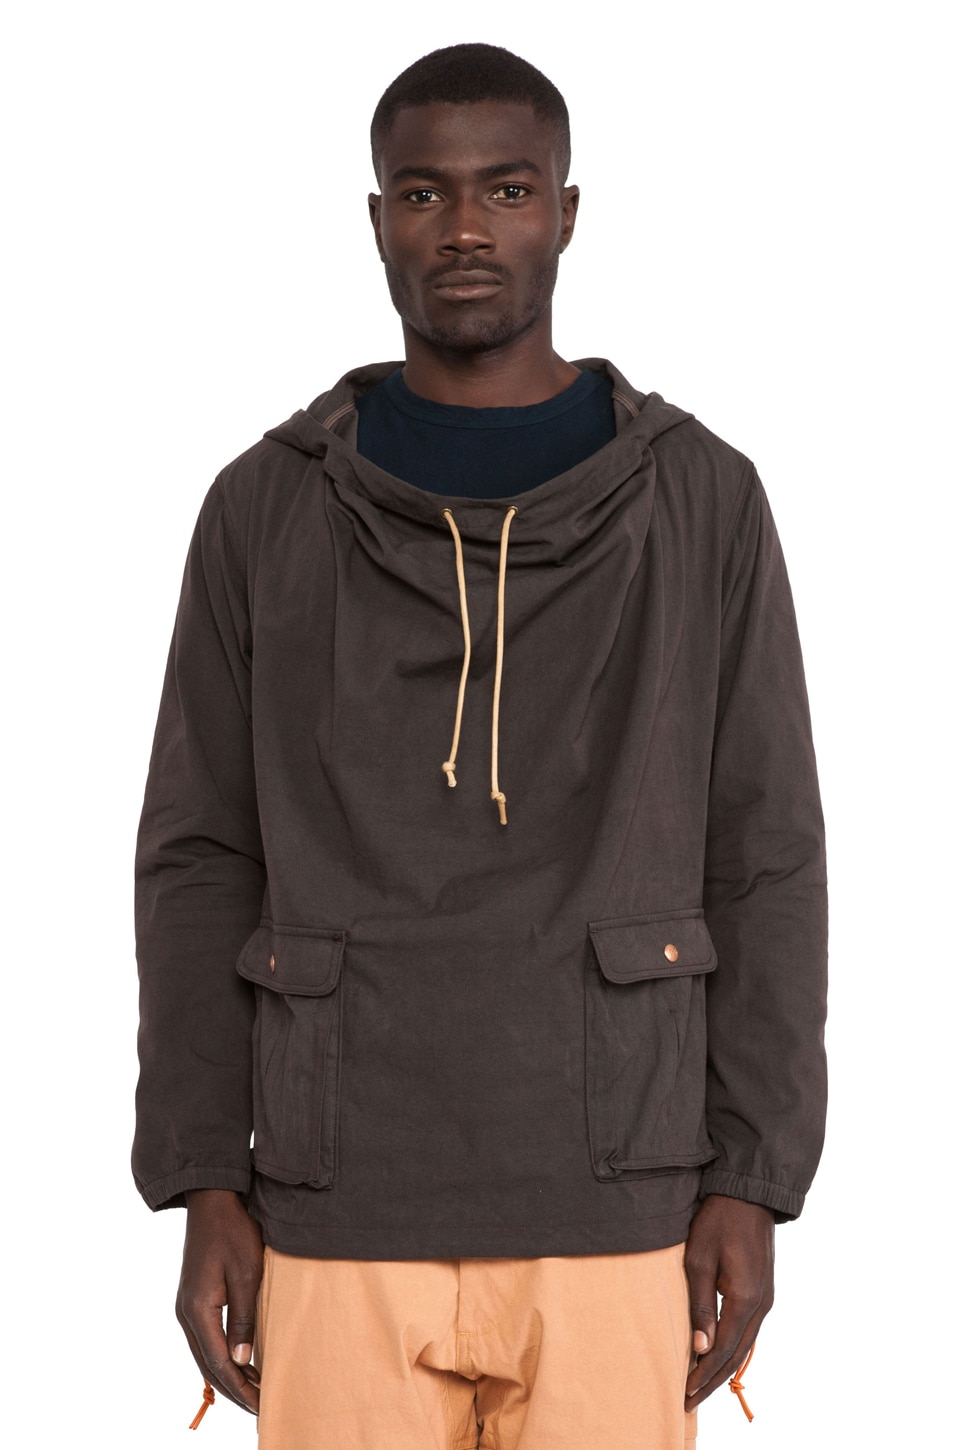 AXS Folk Technology Wideneck Anorak in Burnt Brown